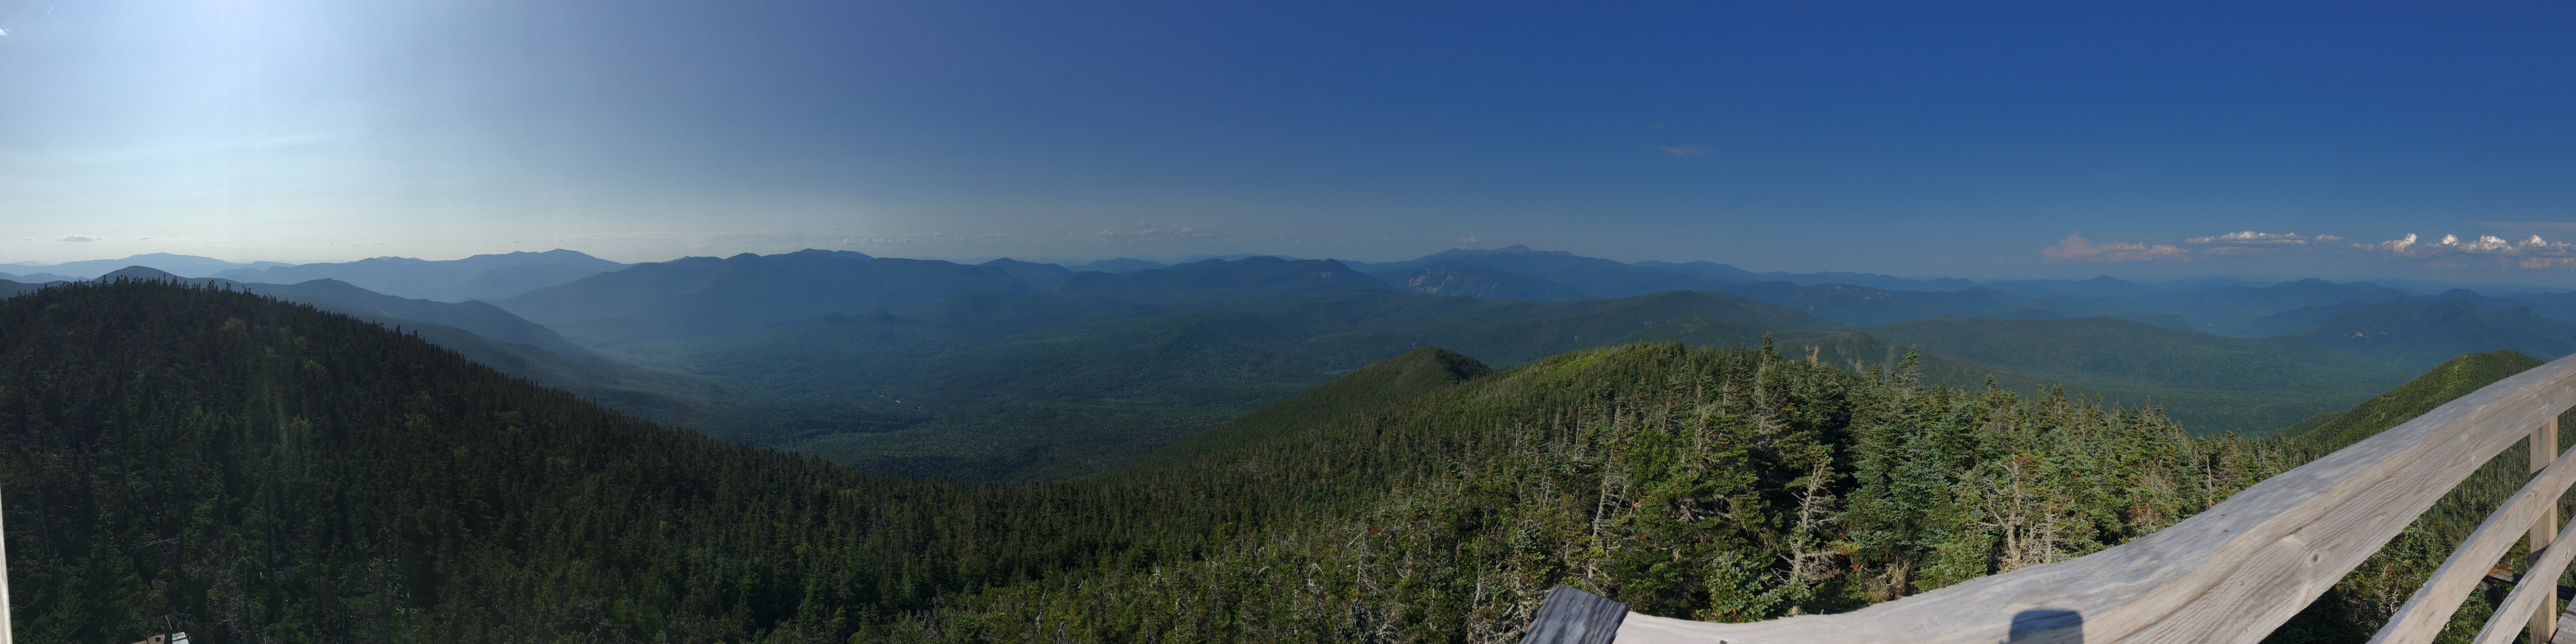 Panorama_Carrigain_20190803